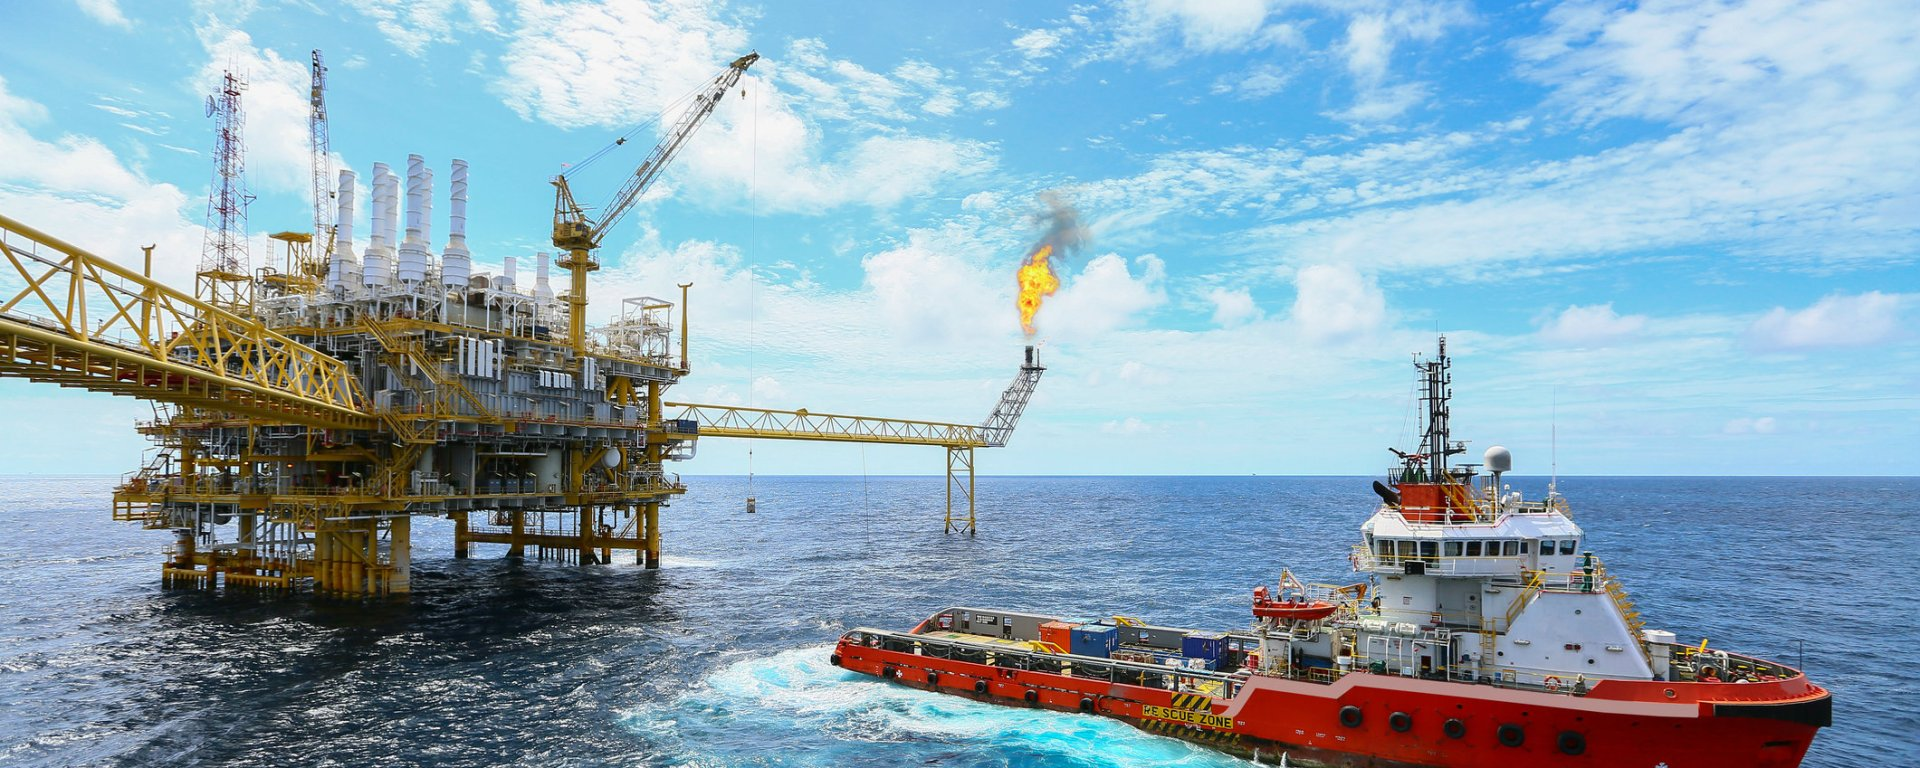 Liquified Natural Gas Asx Lng Edging Up On Extension Of Offtake